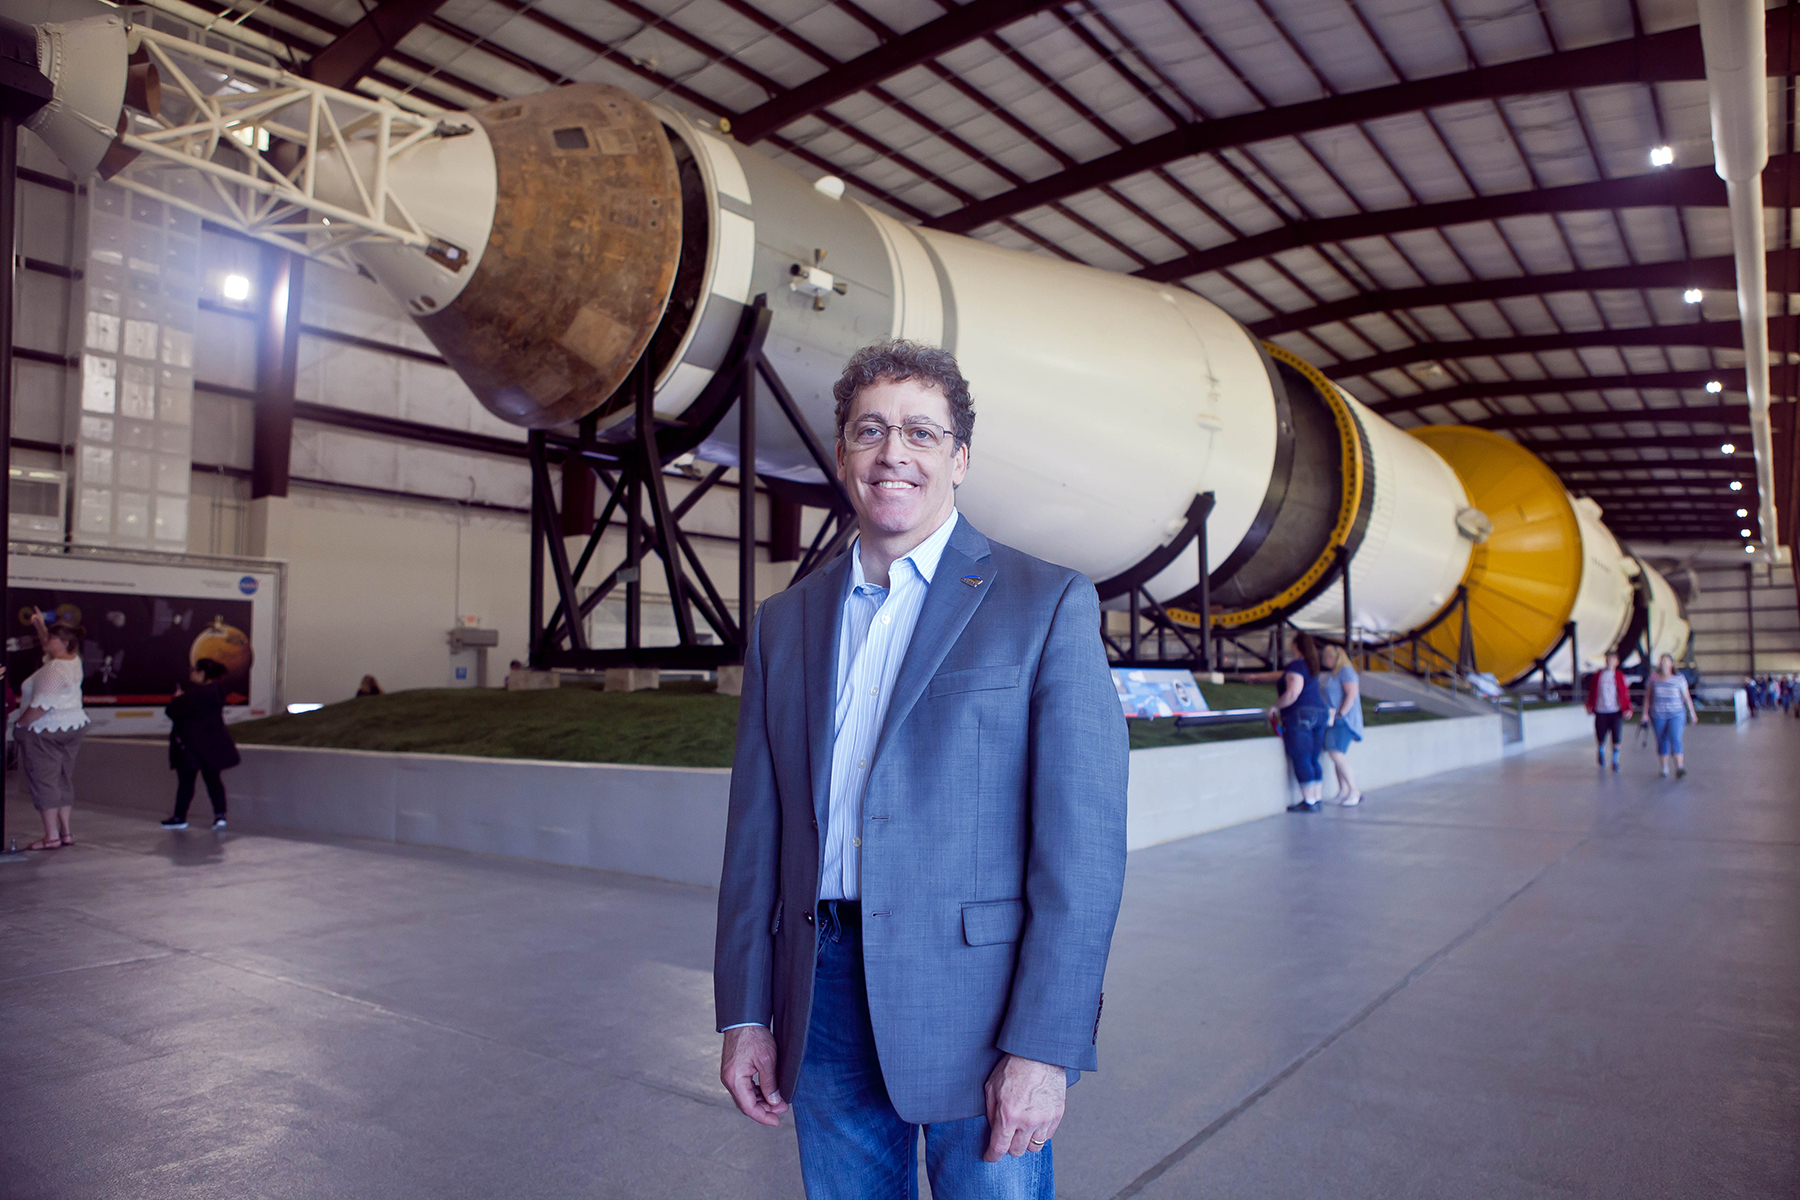 Brian Rishikof standing in front of a rocket